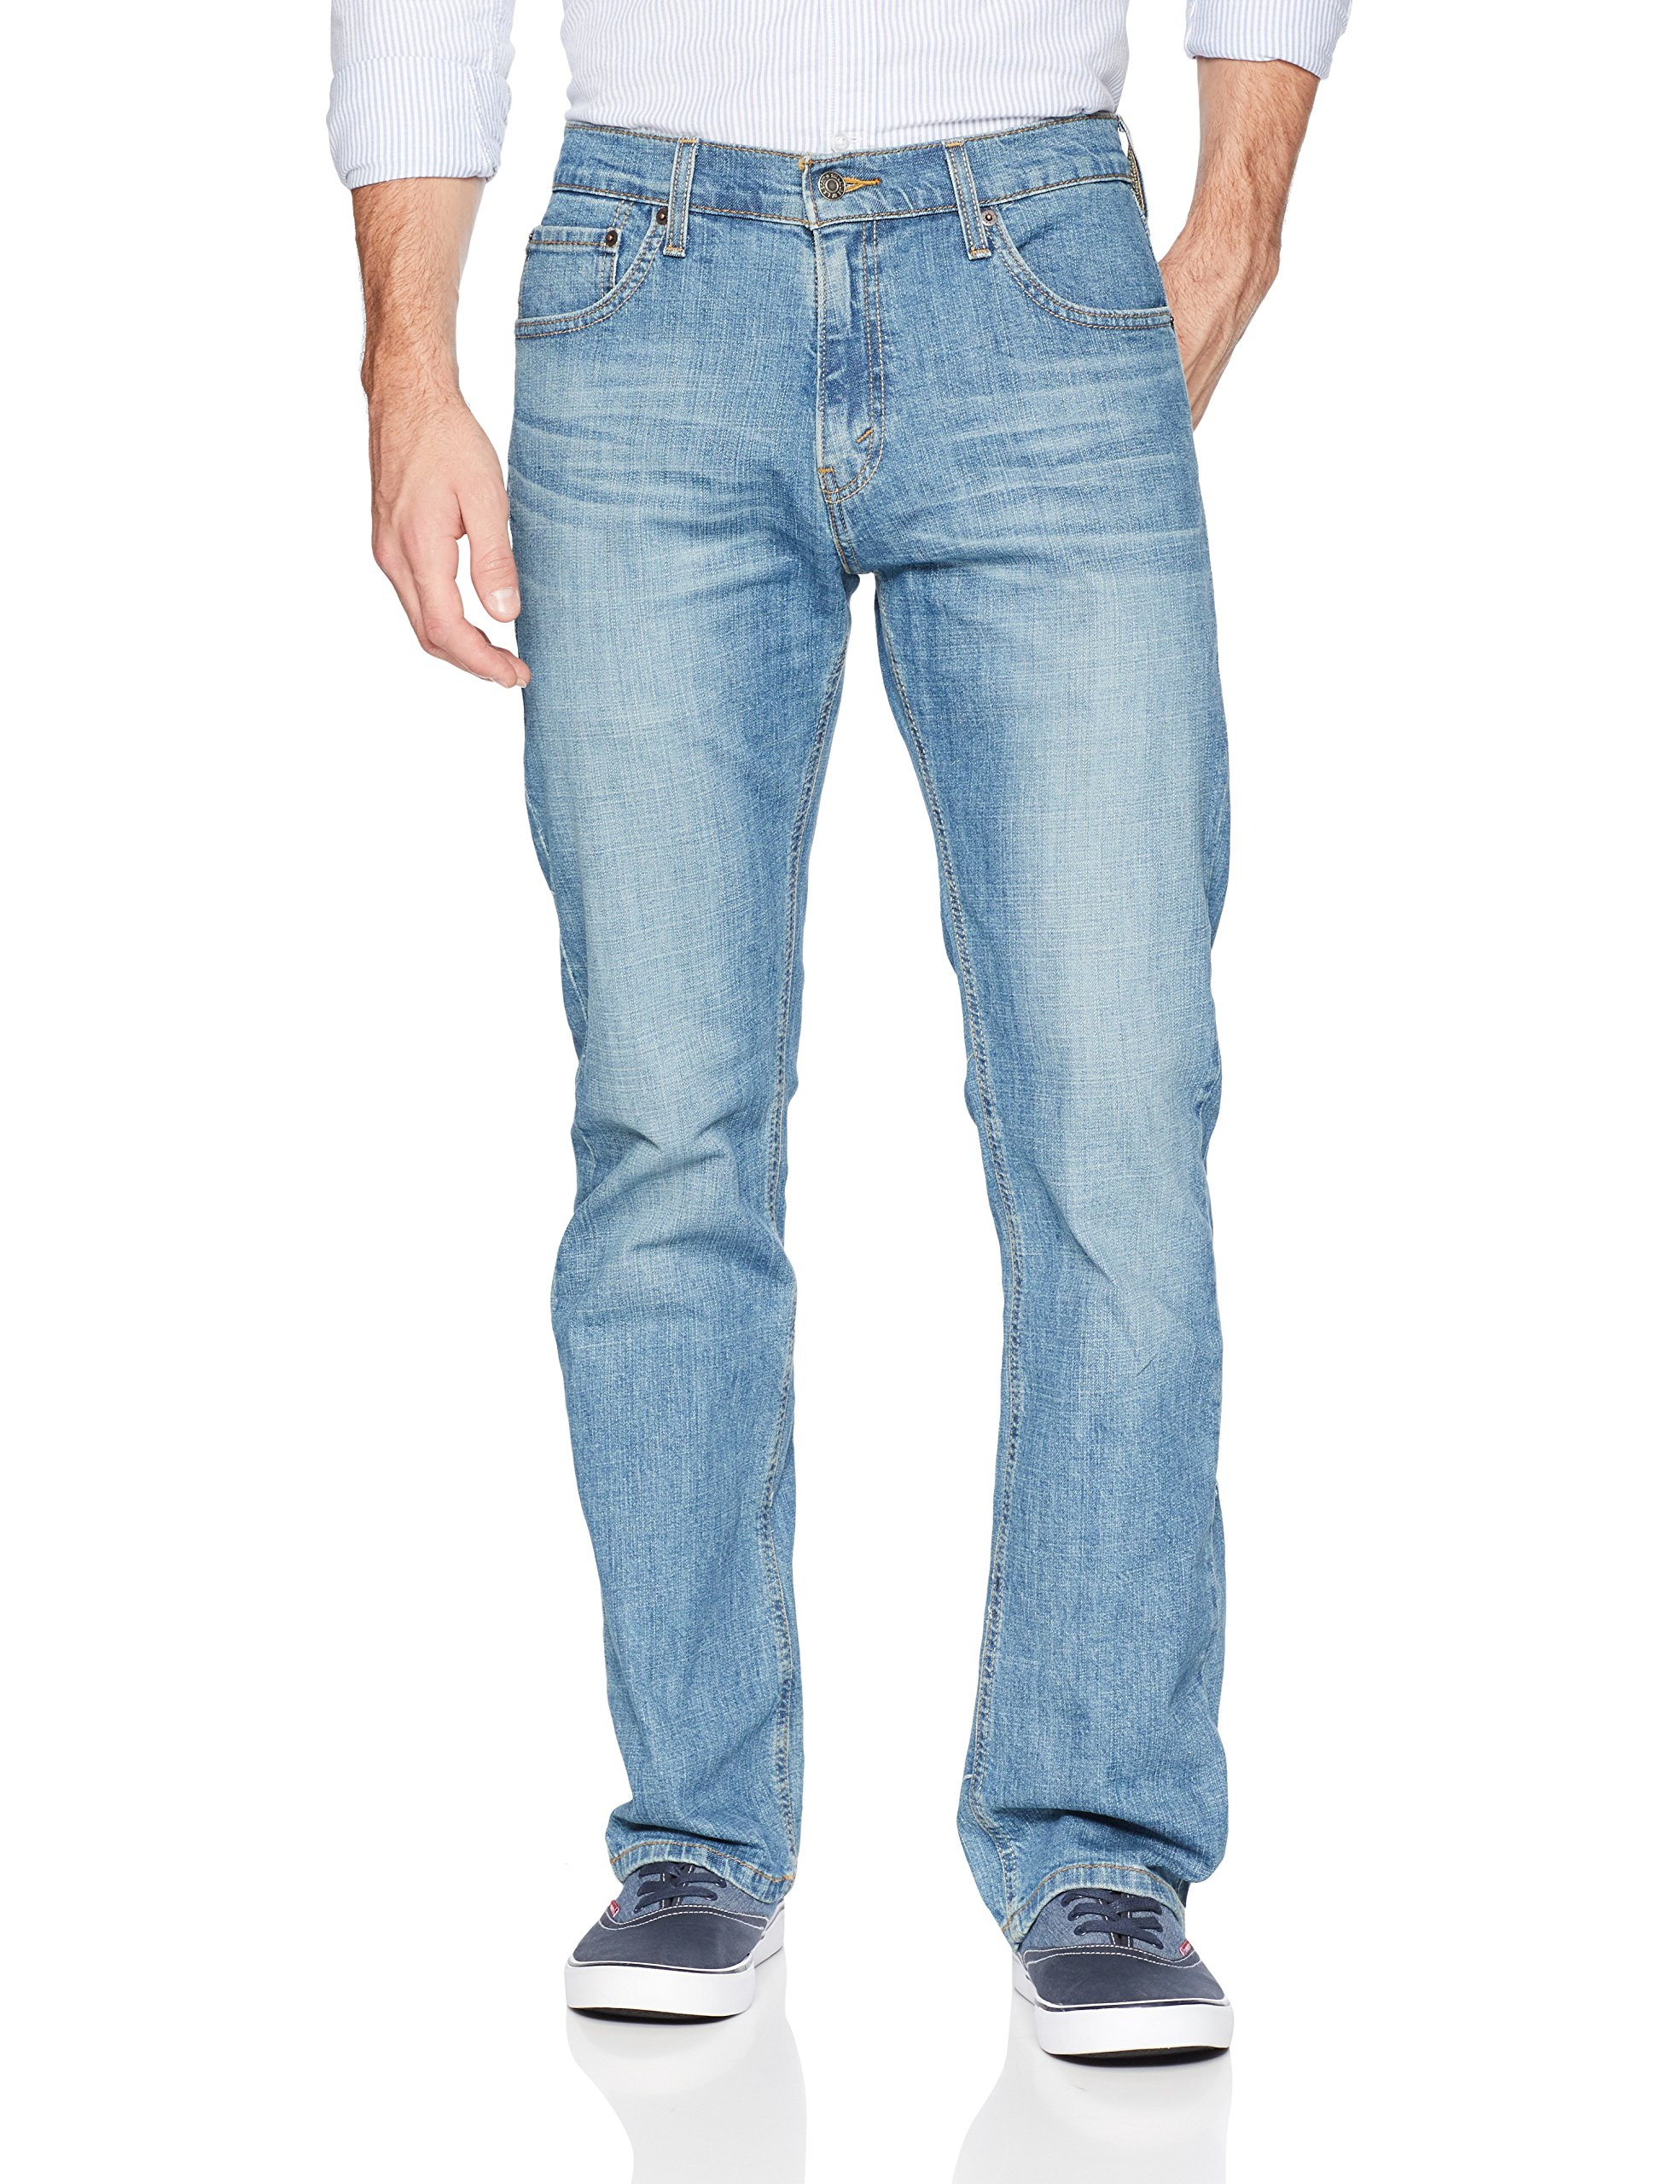 Signature by Levi Strauss & Co. Gold Label Men's Bootcut Fit Jeans